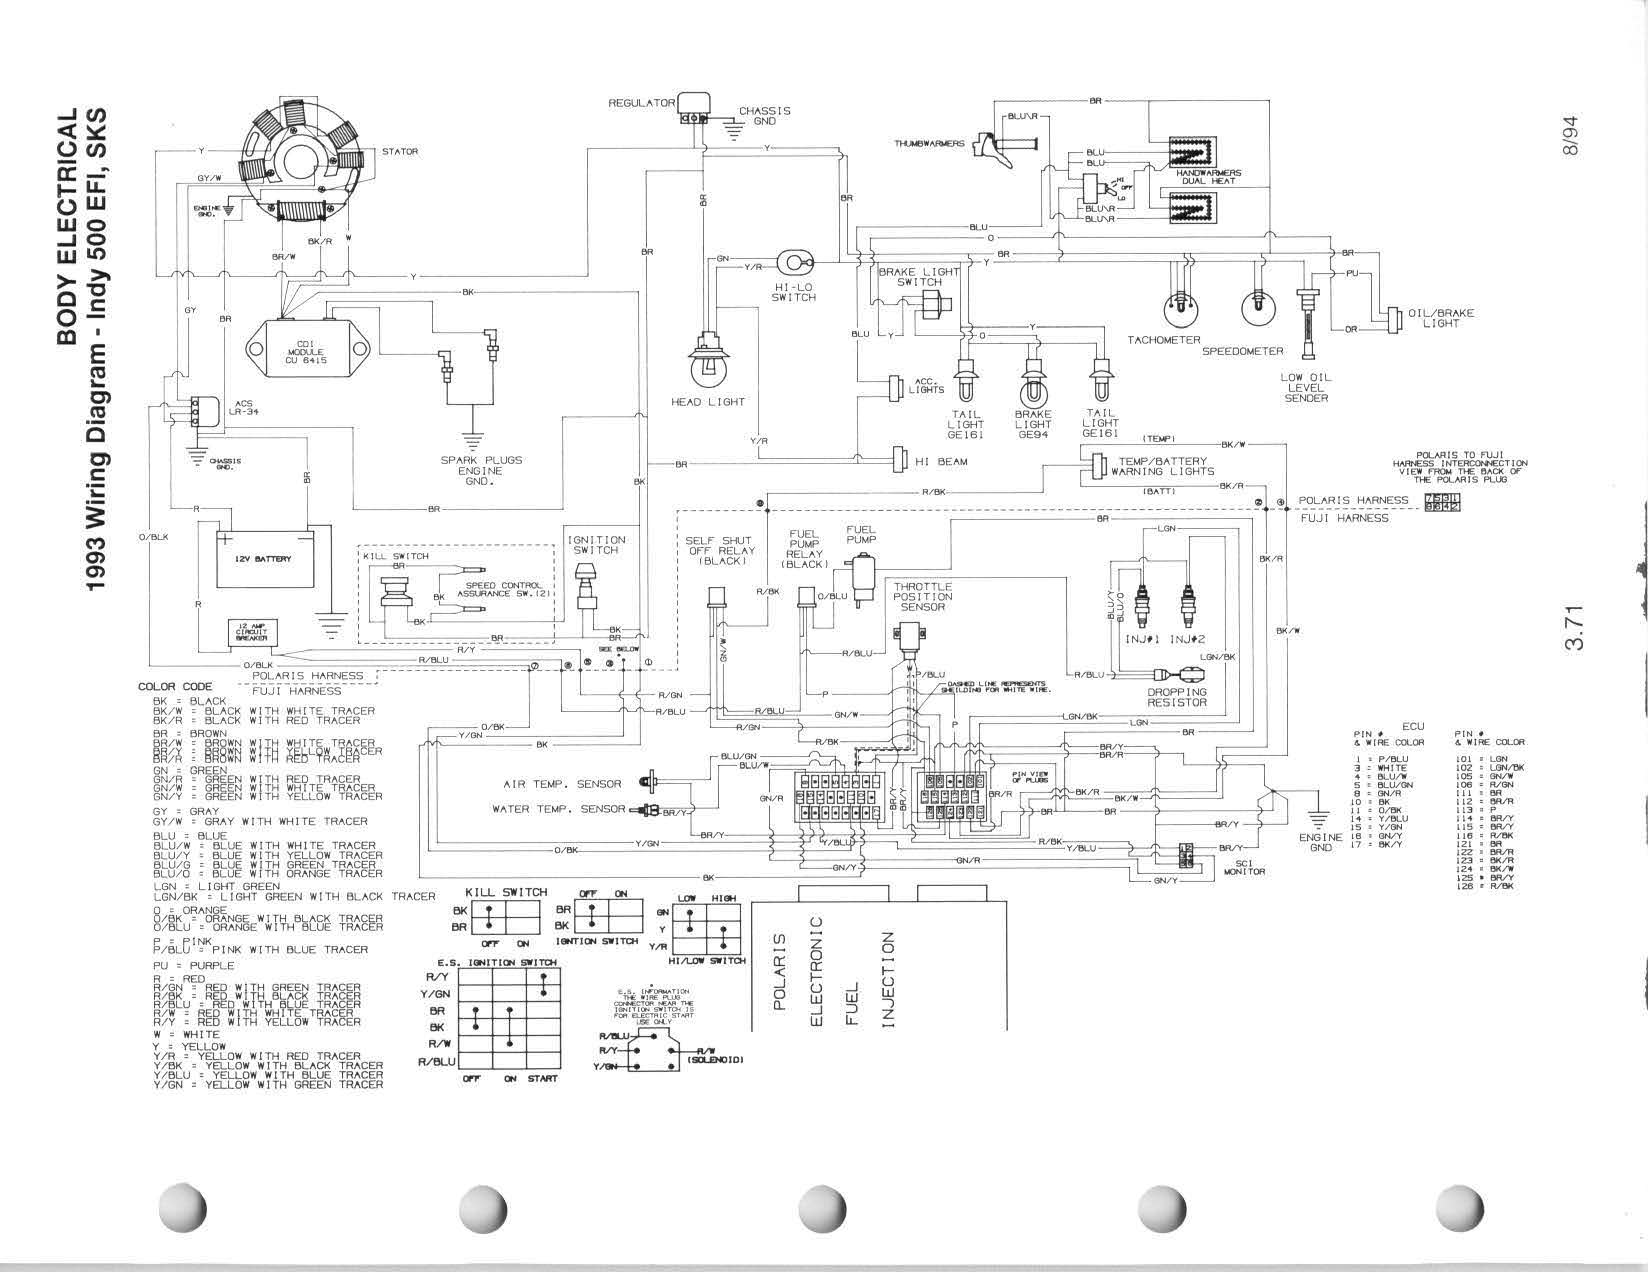 192640 polaris wiring diagram needed 201111361710417_18890 polaris wiring diagram ptc wiring diagram \u2022 free wiring diagrams 1997 polaris sportsman 500 wiring diagram at creativeand.co